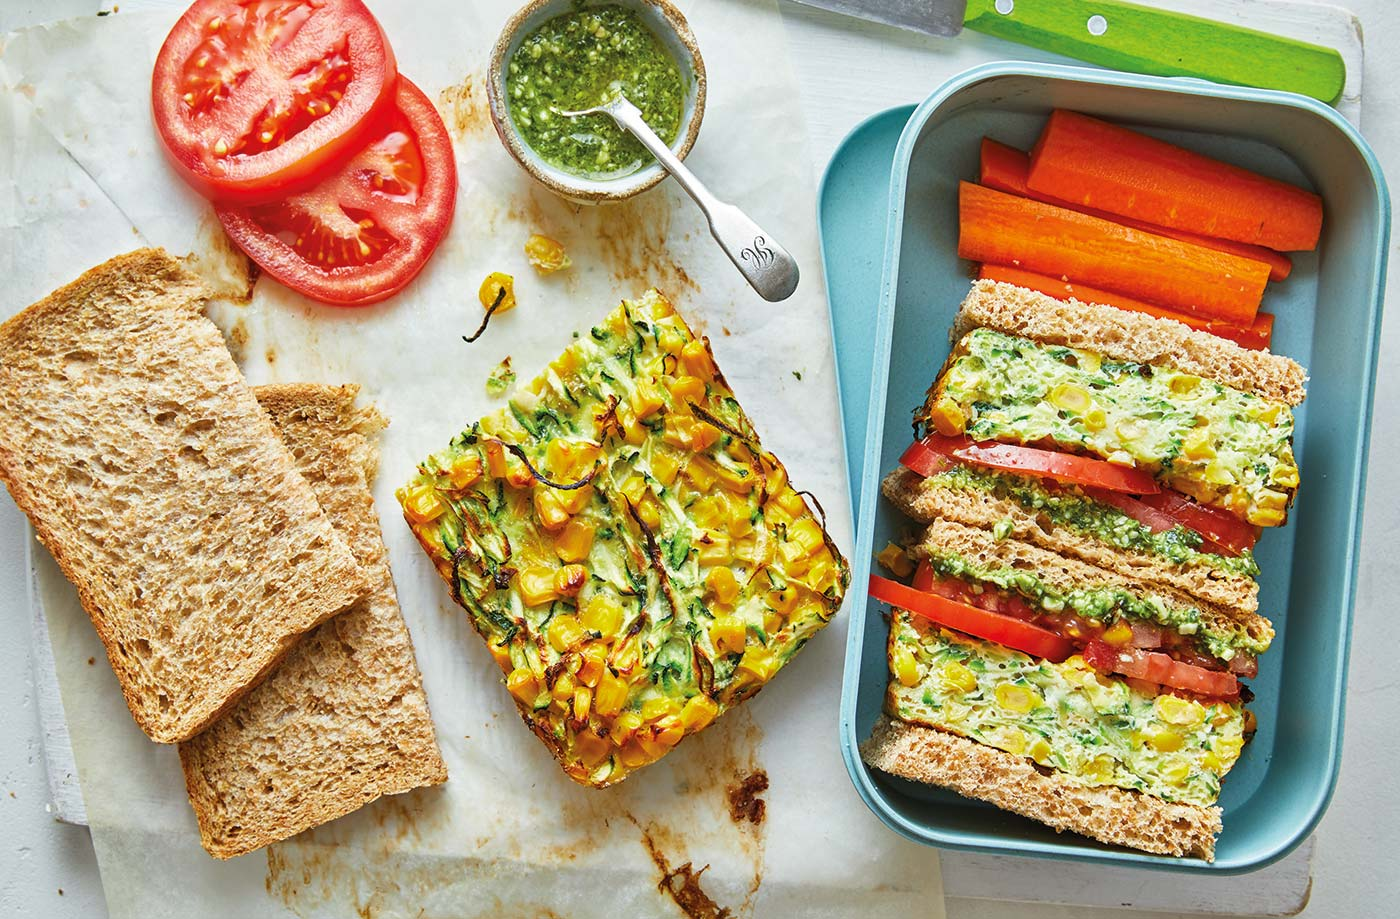 Sweetcorn and courgette frittata sandwiches recipe